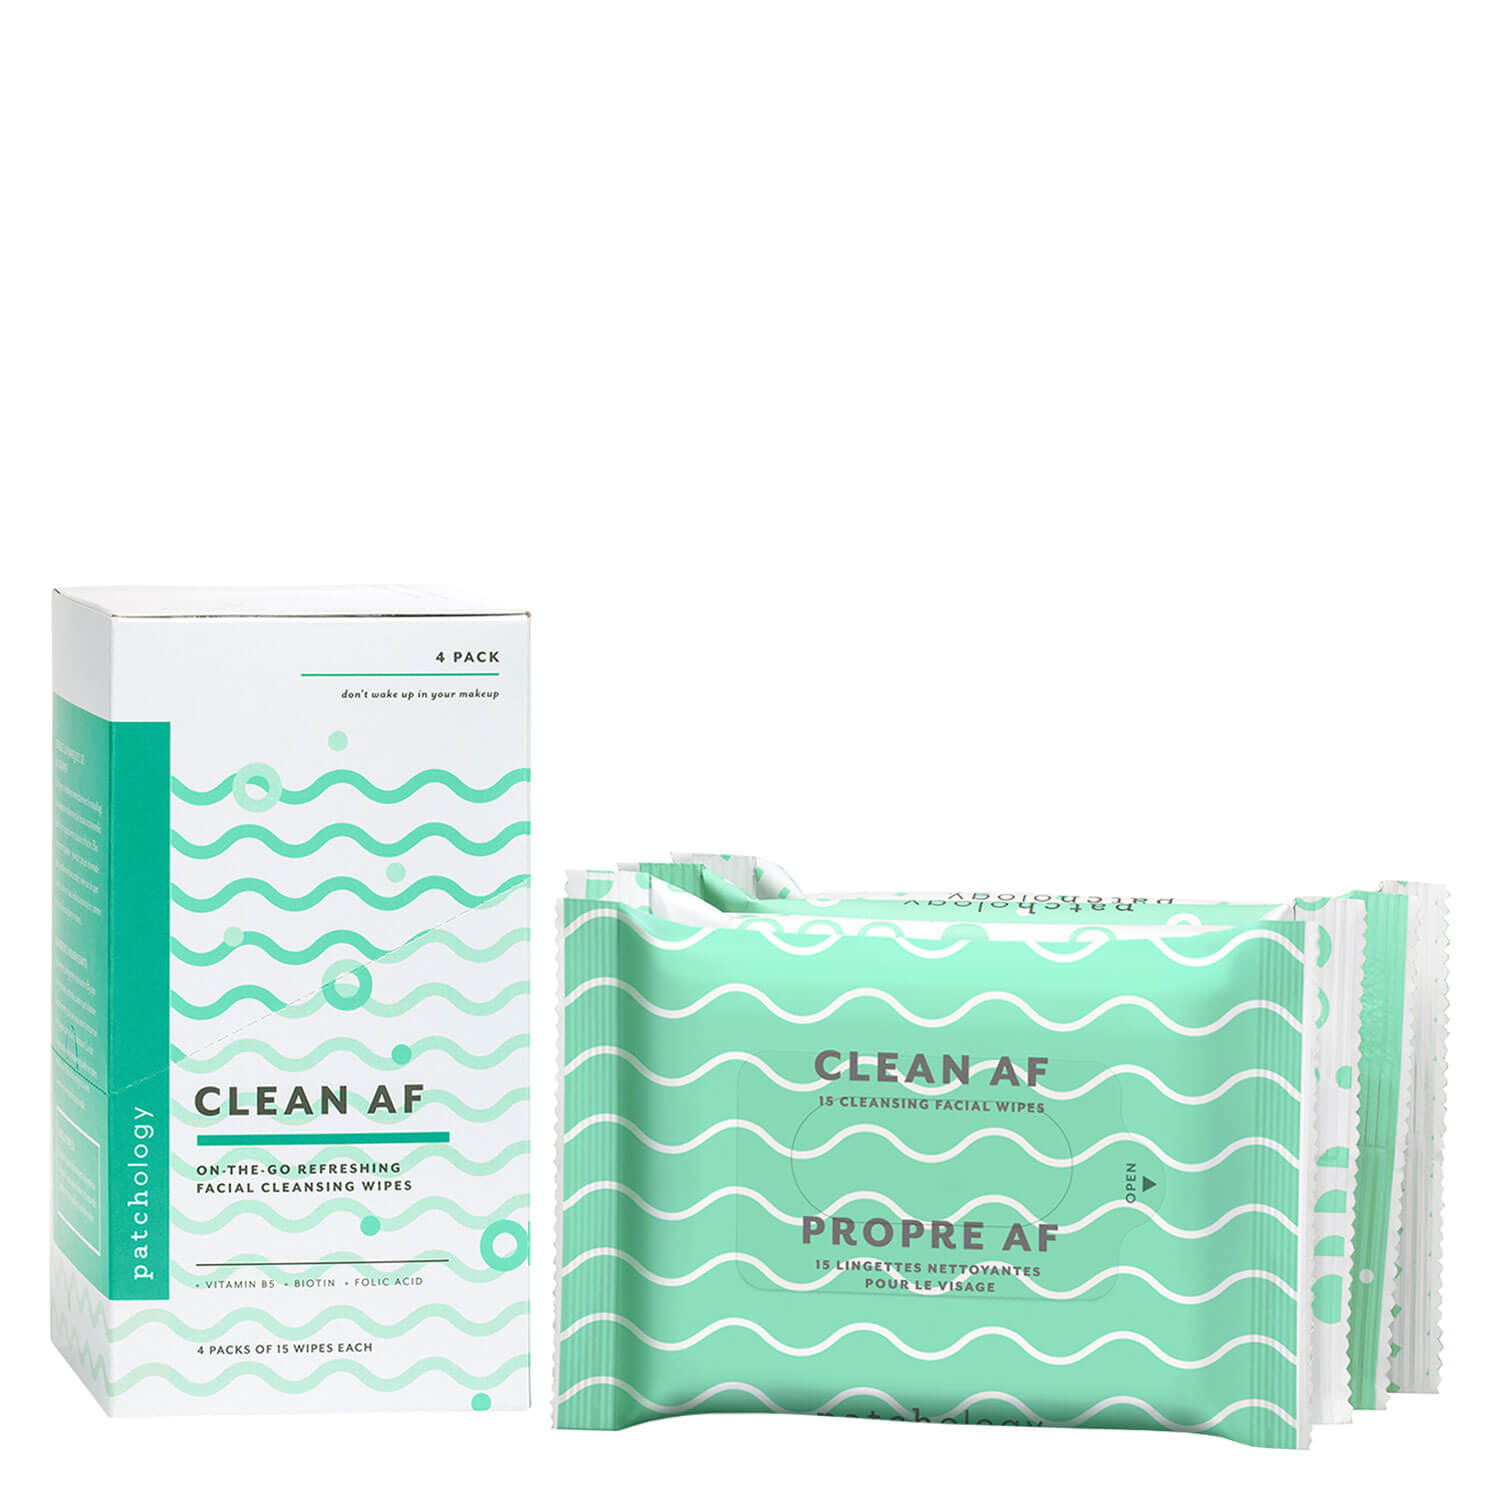 Daily Essentials - Clean AF Facial Cleansing Wipes